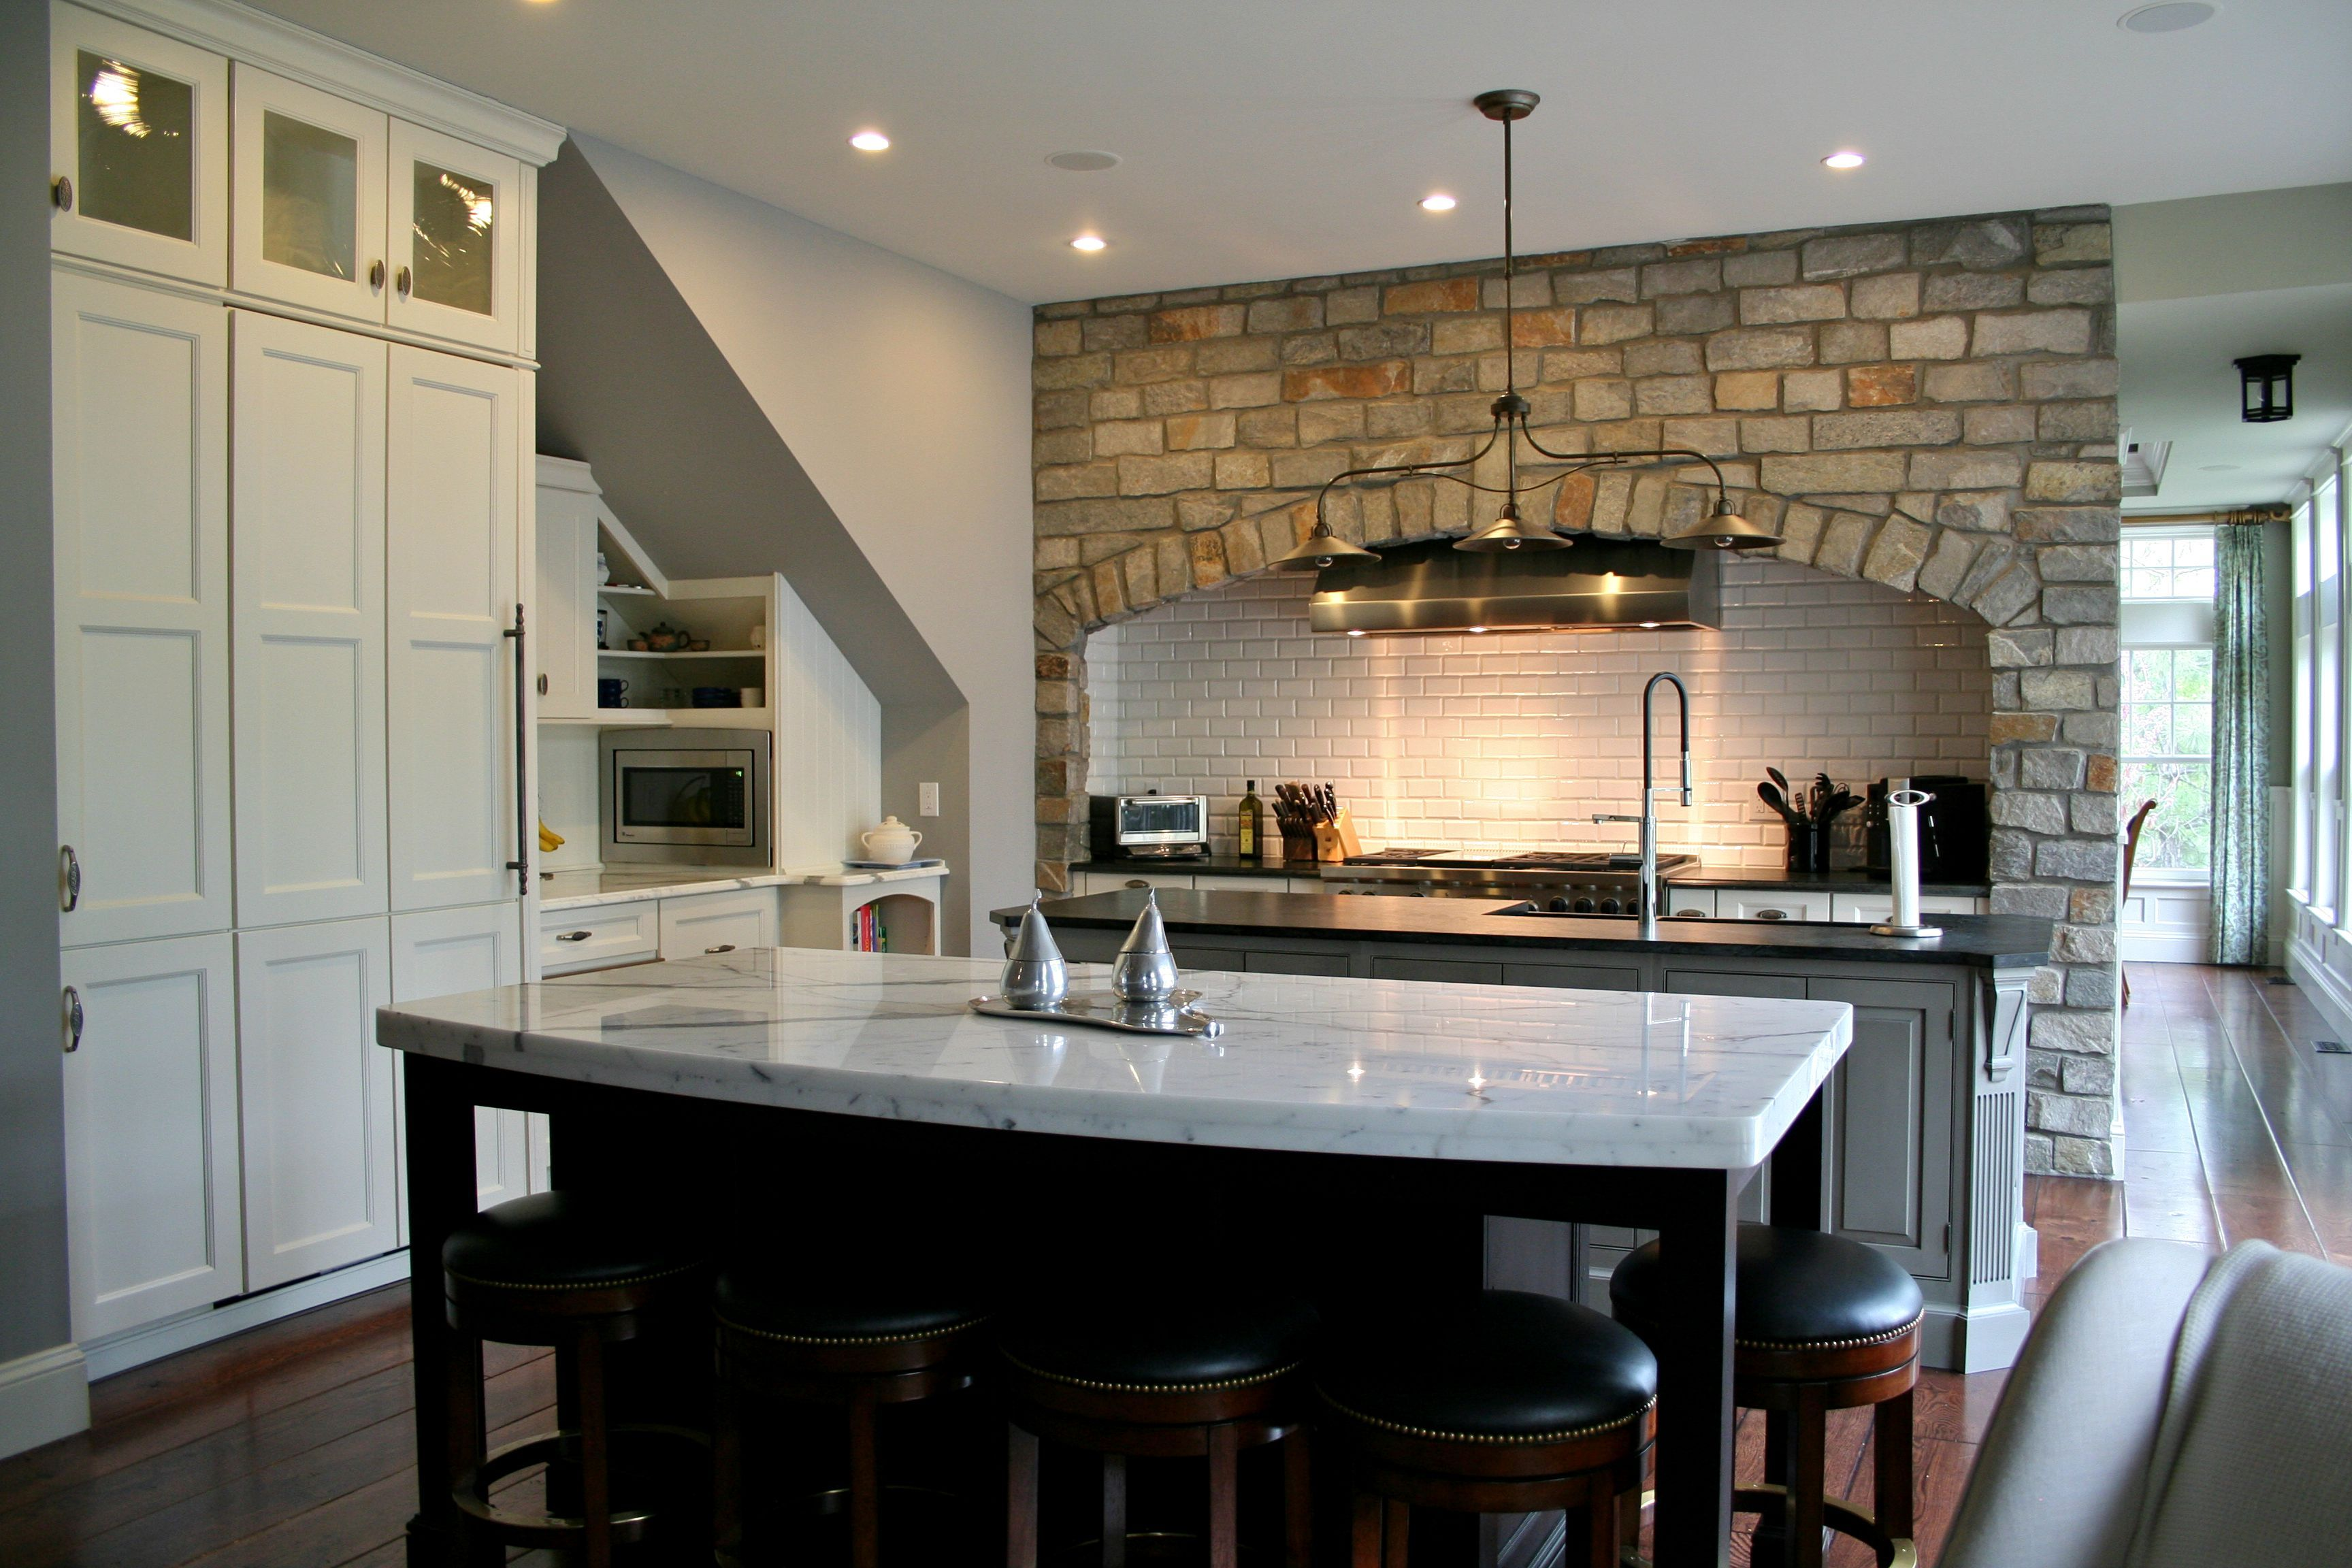 Bkc Kitchen And Bath Project Perimeter Cabinets Medallion Cabinetry Providence Door Style D Kitchen Technology Black Kitchen Cabinets Kitchen Inspirations